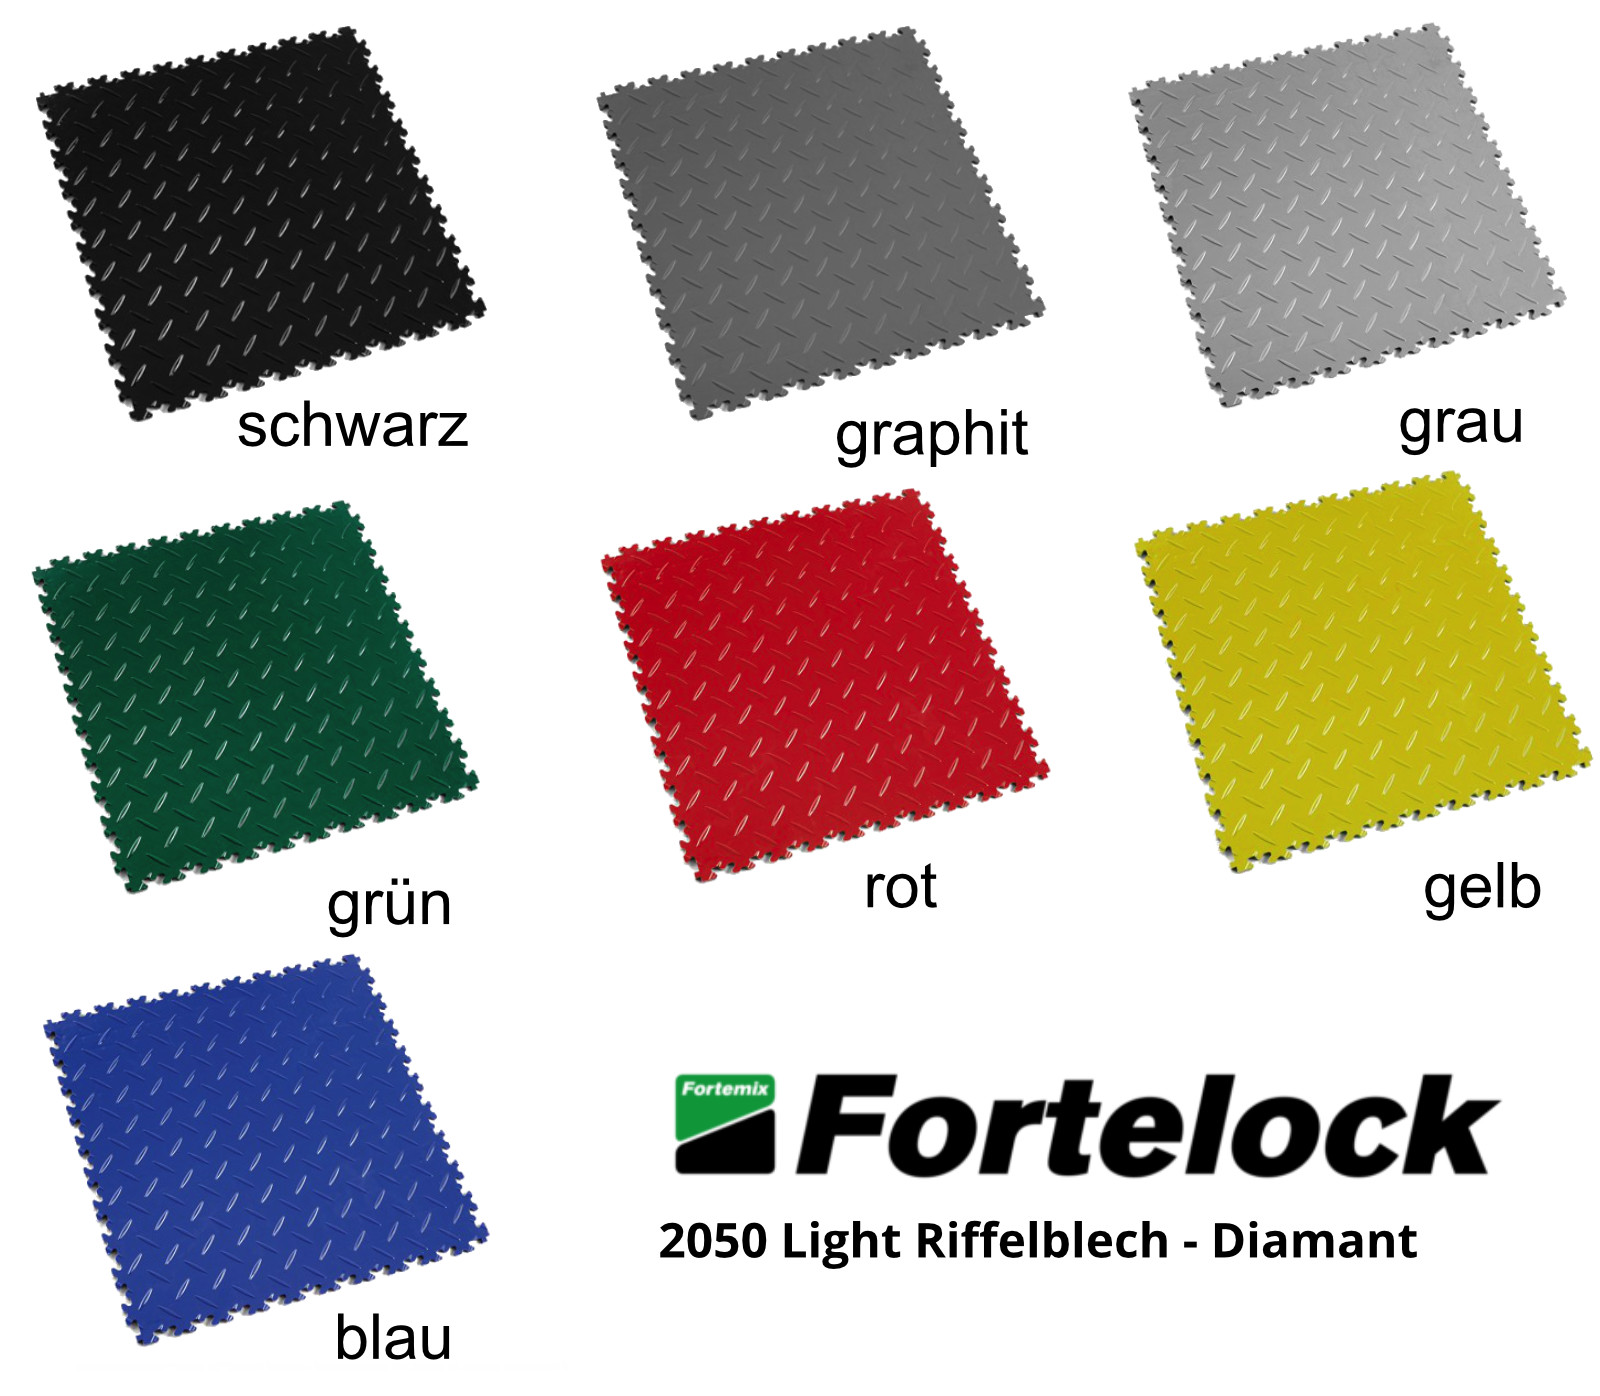 fortelock-light-2050-riffelblech